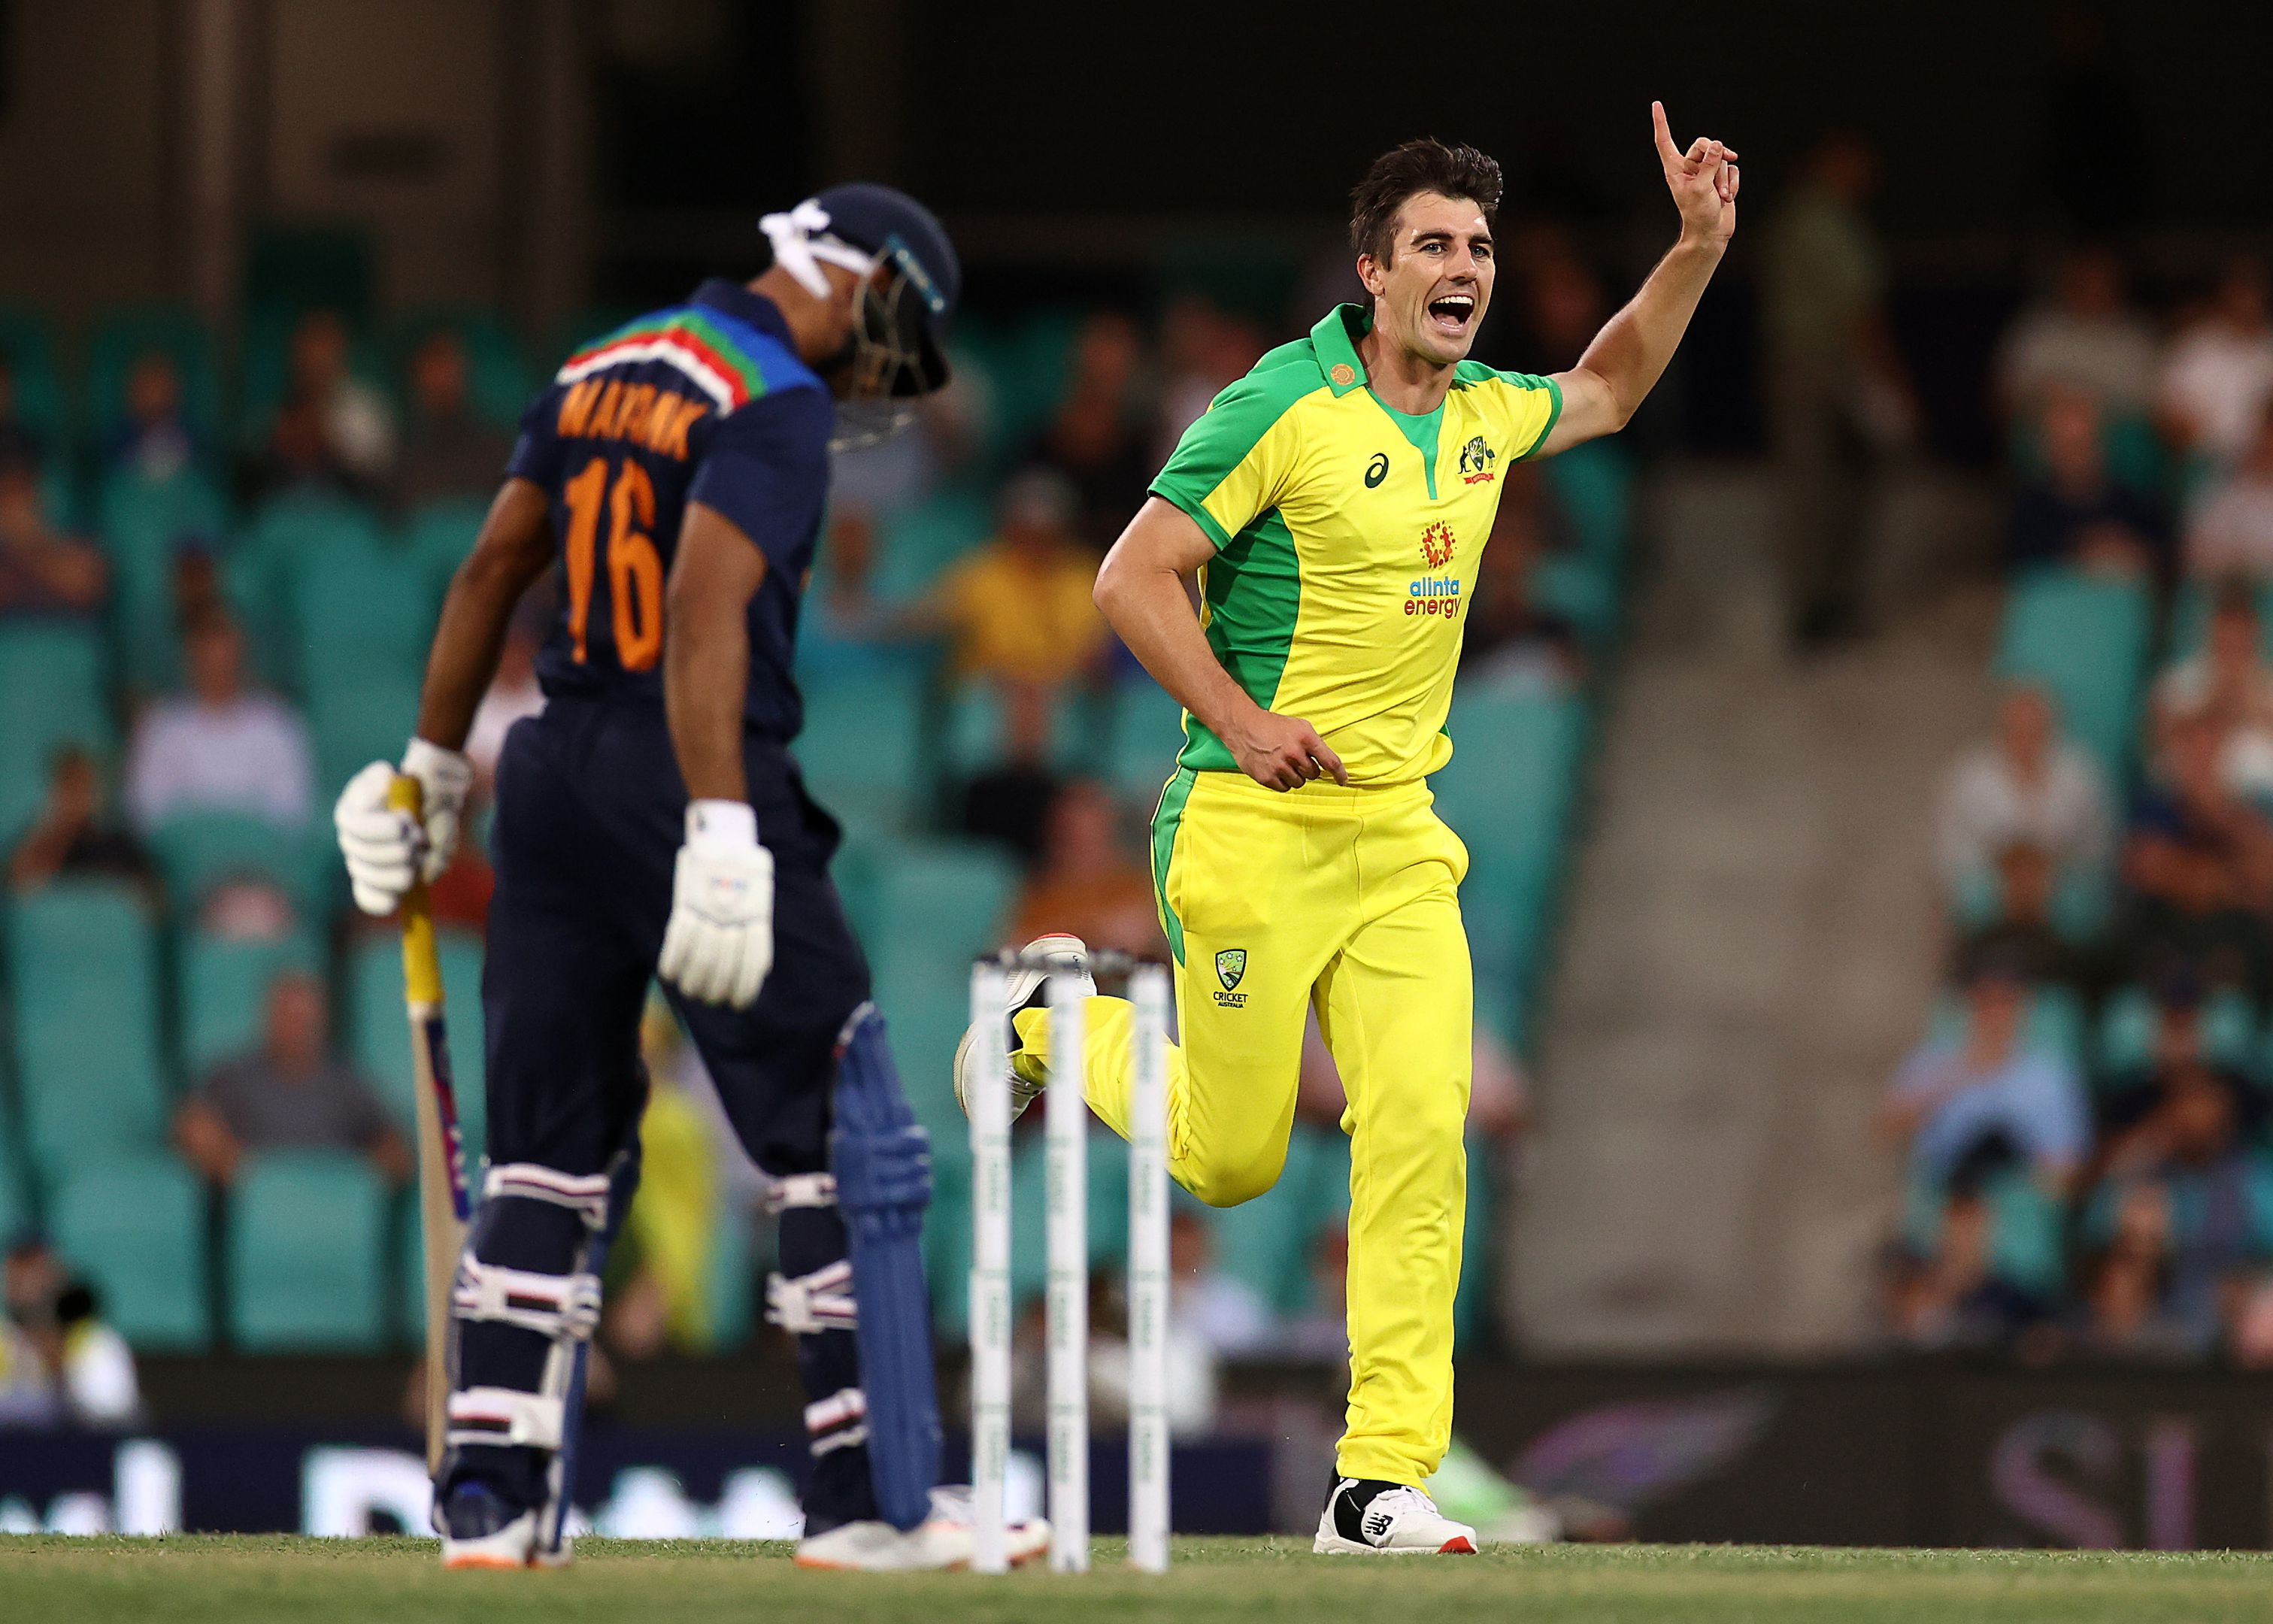 Pat Cummins of Australia celebrates after taking the wicket of Mayank Agarwal.